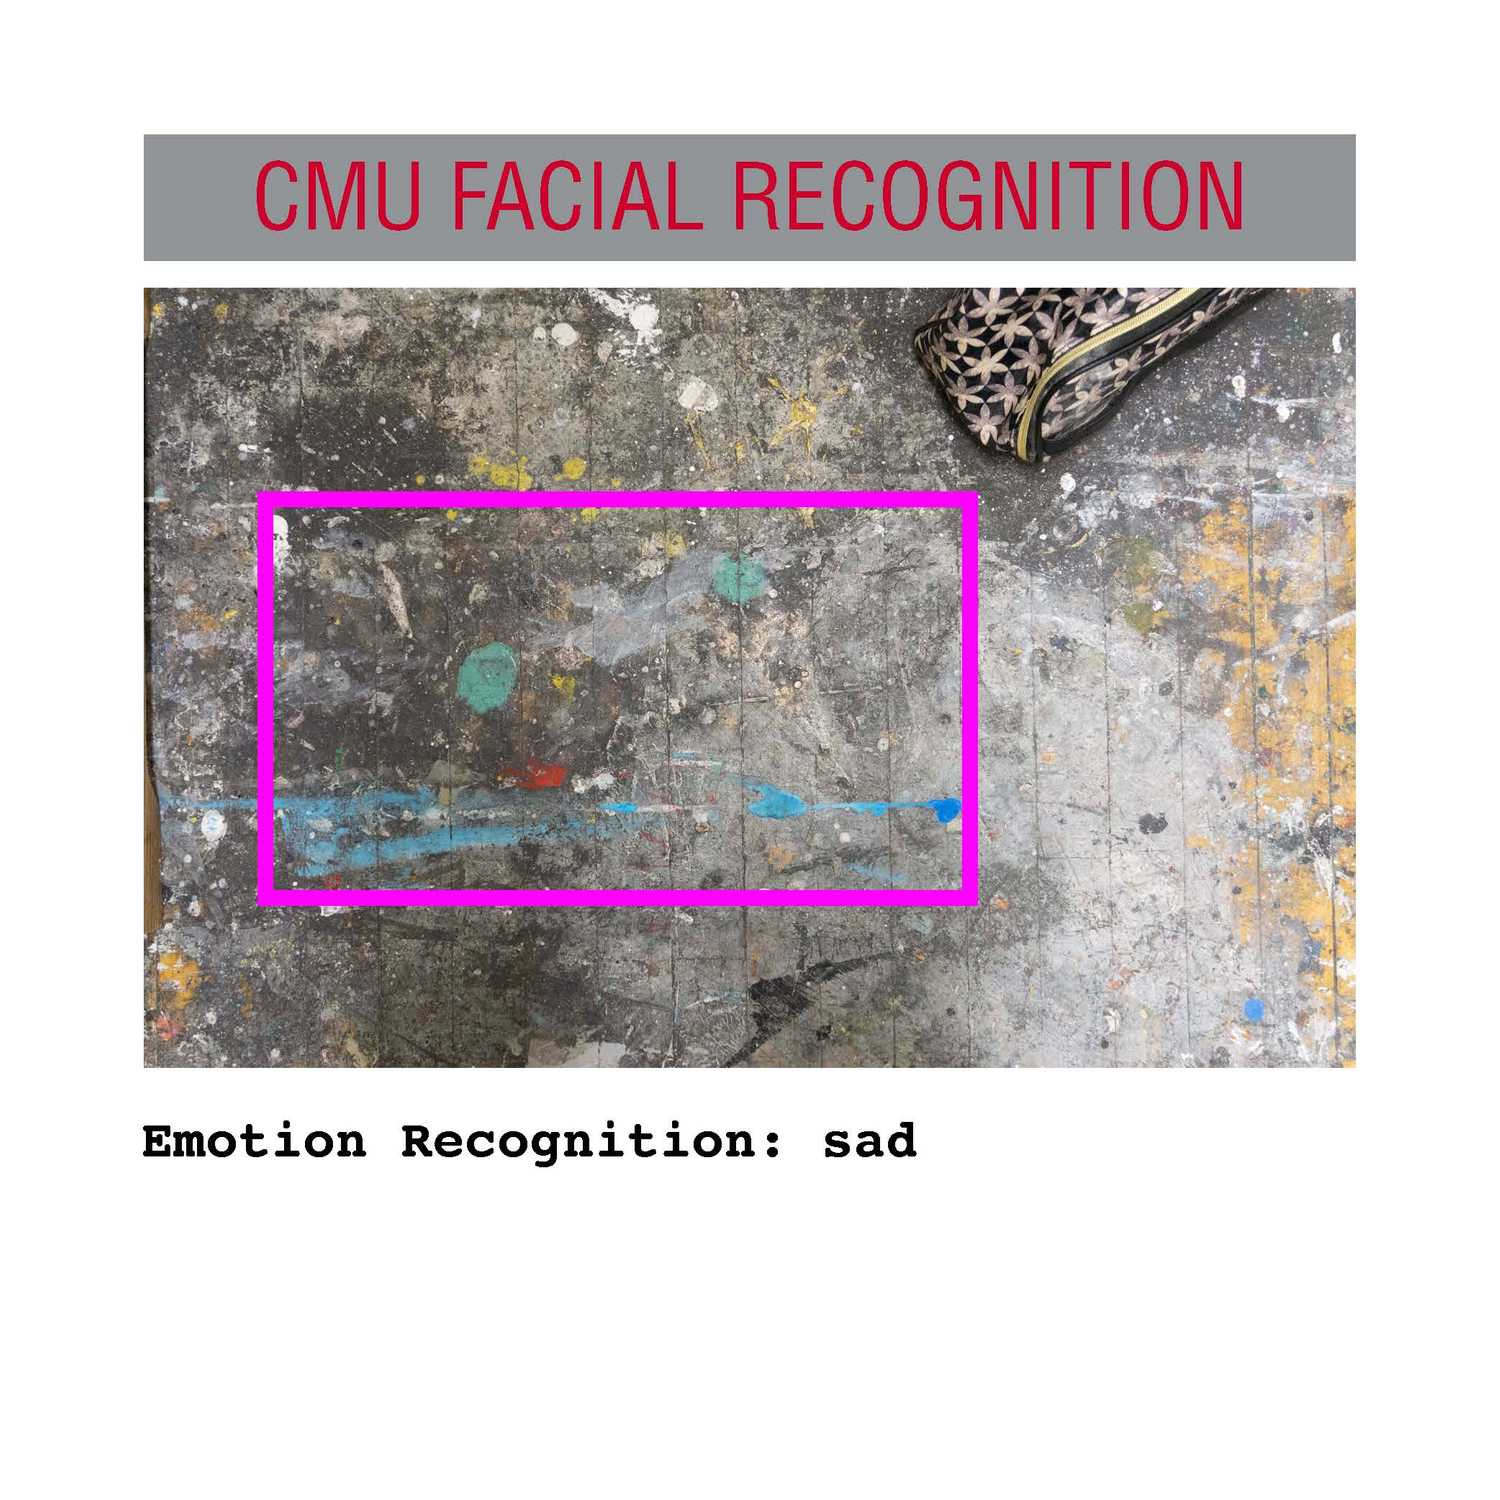 facial recognition Page 01